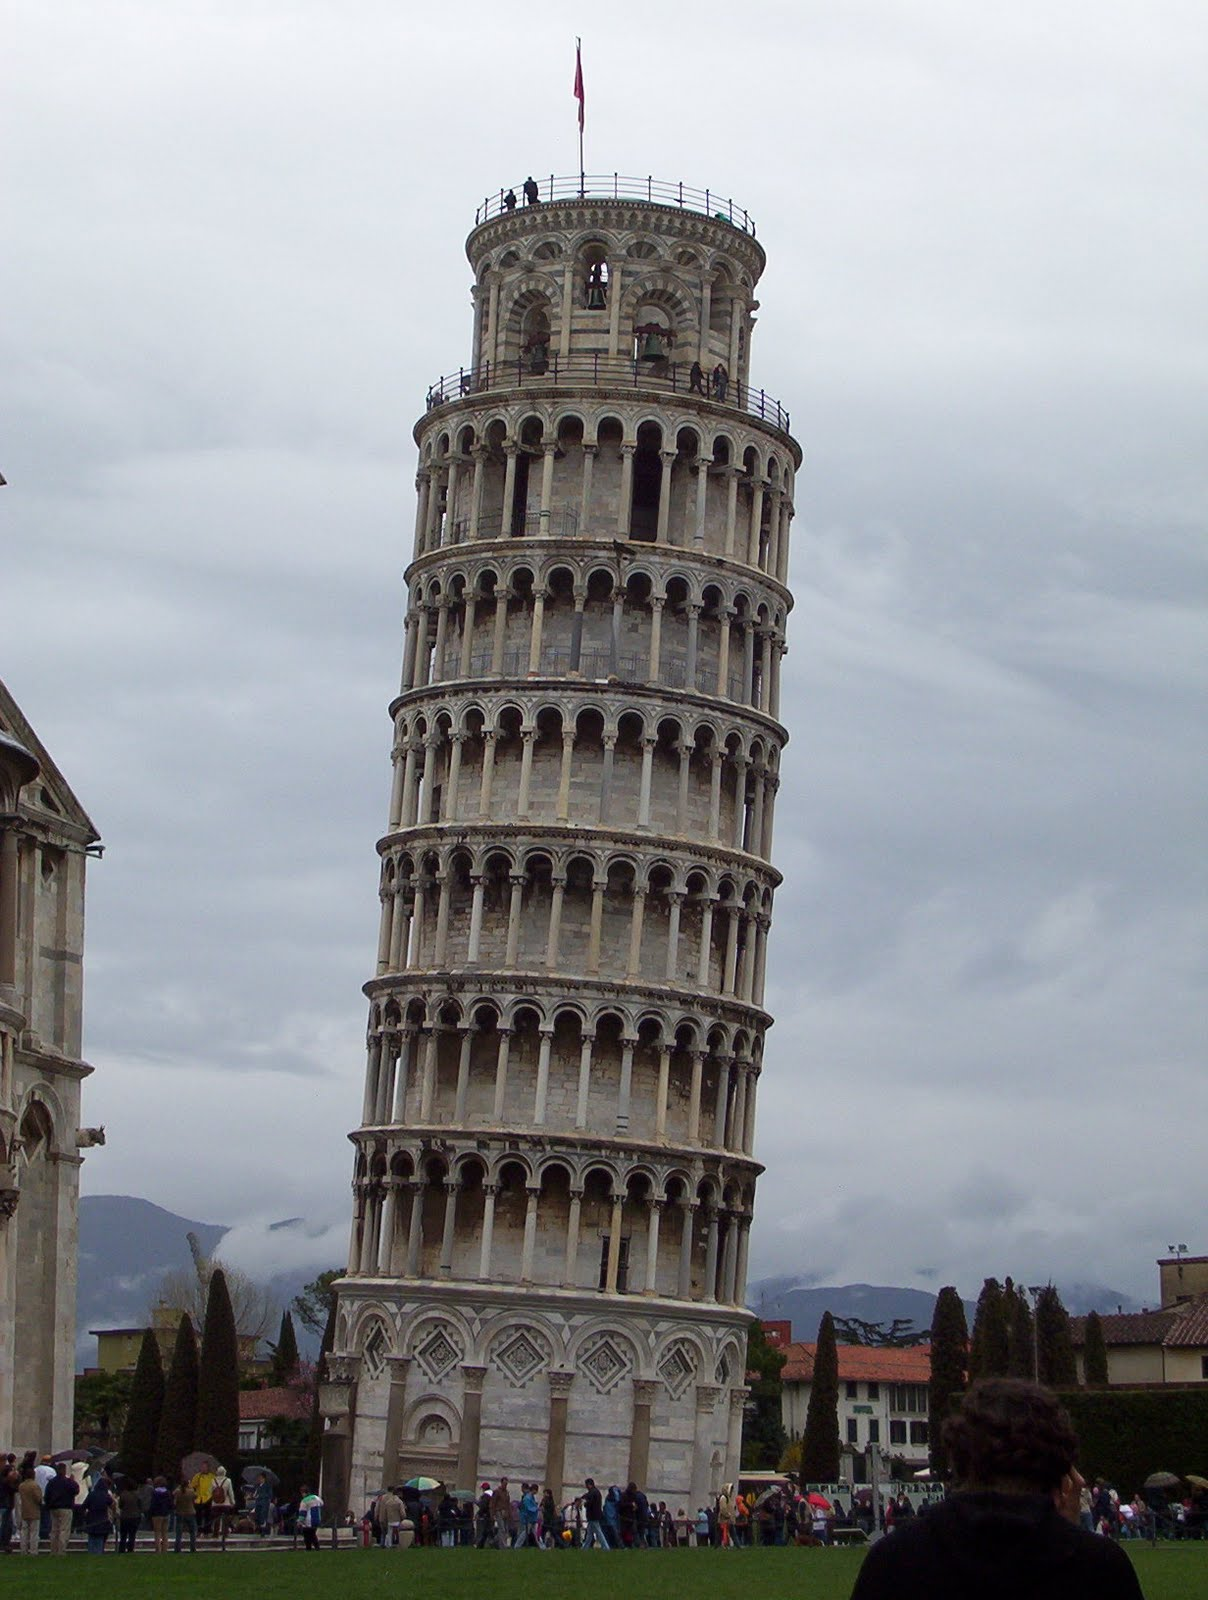 Italy leaning tower of pisa facts - Leaning tower of pisa ...